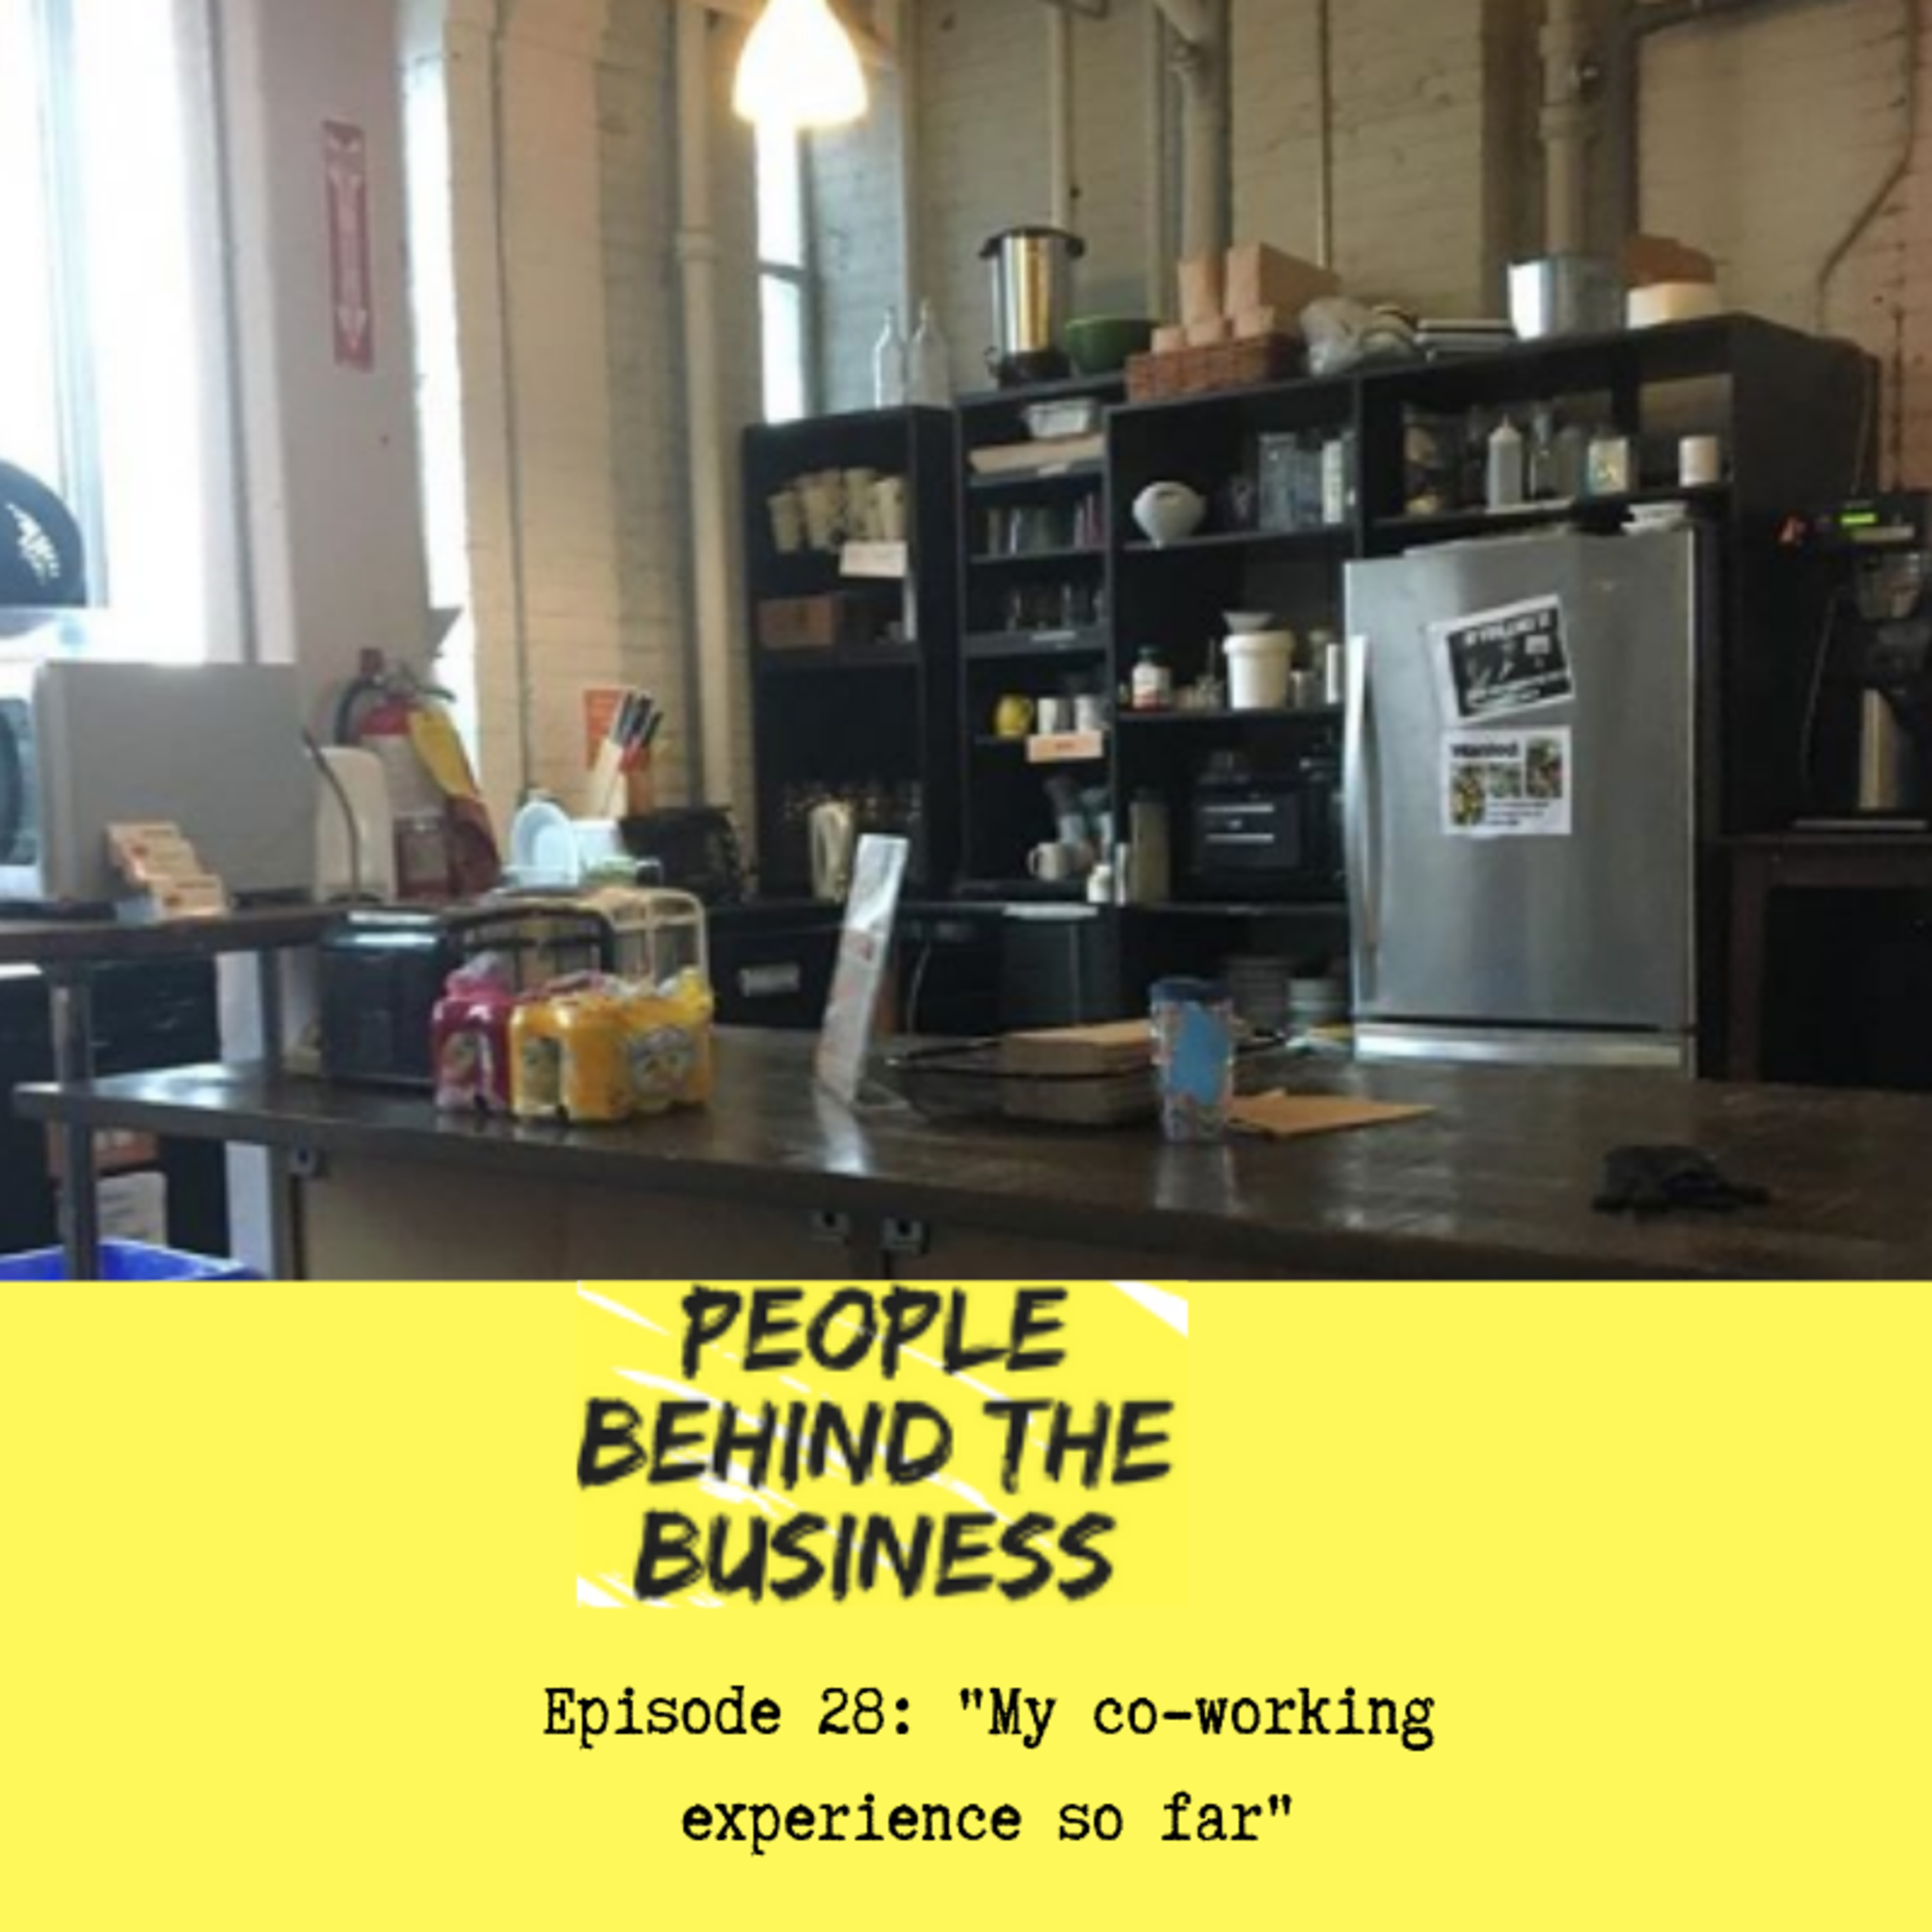 Considering co-working? Here's what my experience has been so far (with co-working).